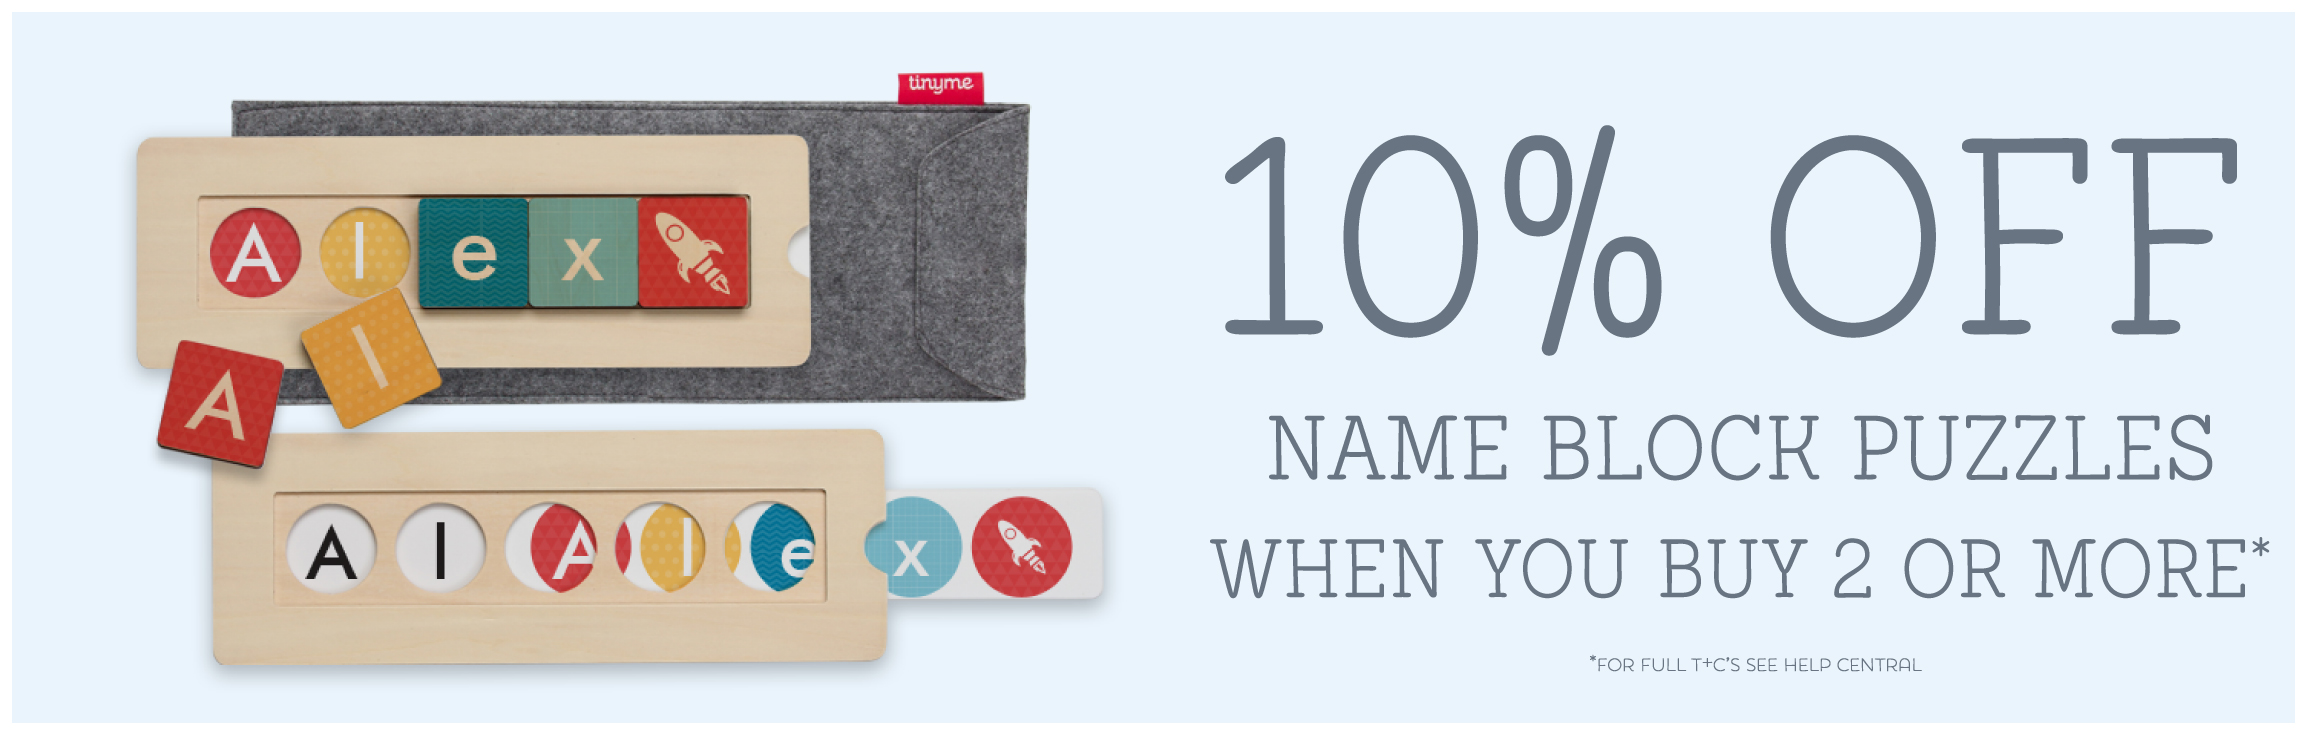 Save 10% when you buy 2 or more name block puzzles